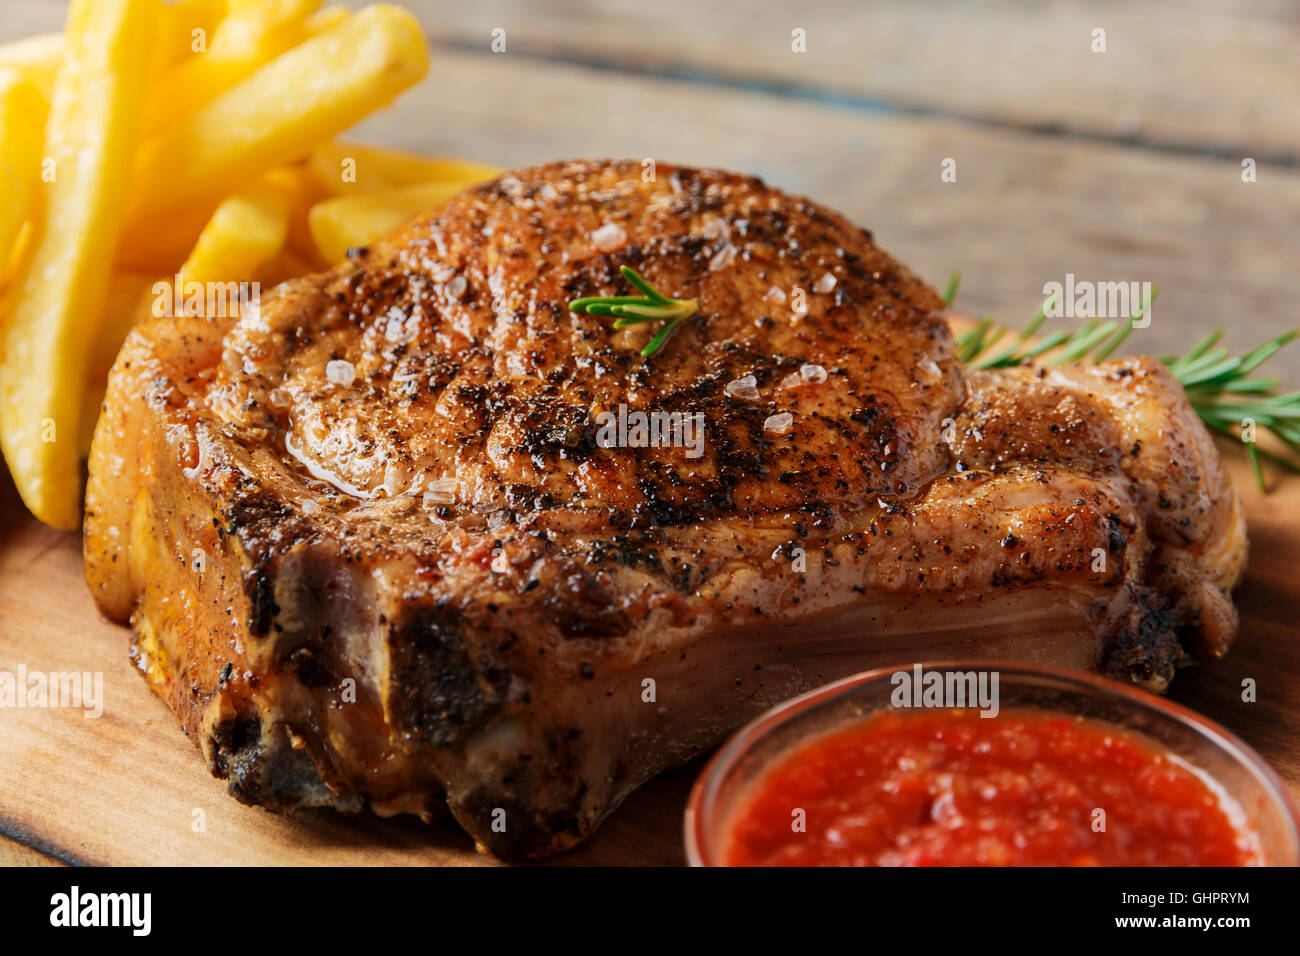 steak on the bone steak with french fries and sauce - Stock Image